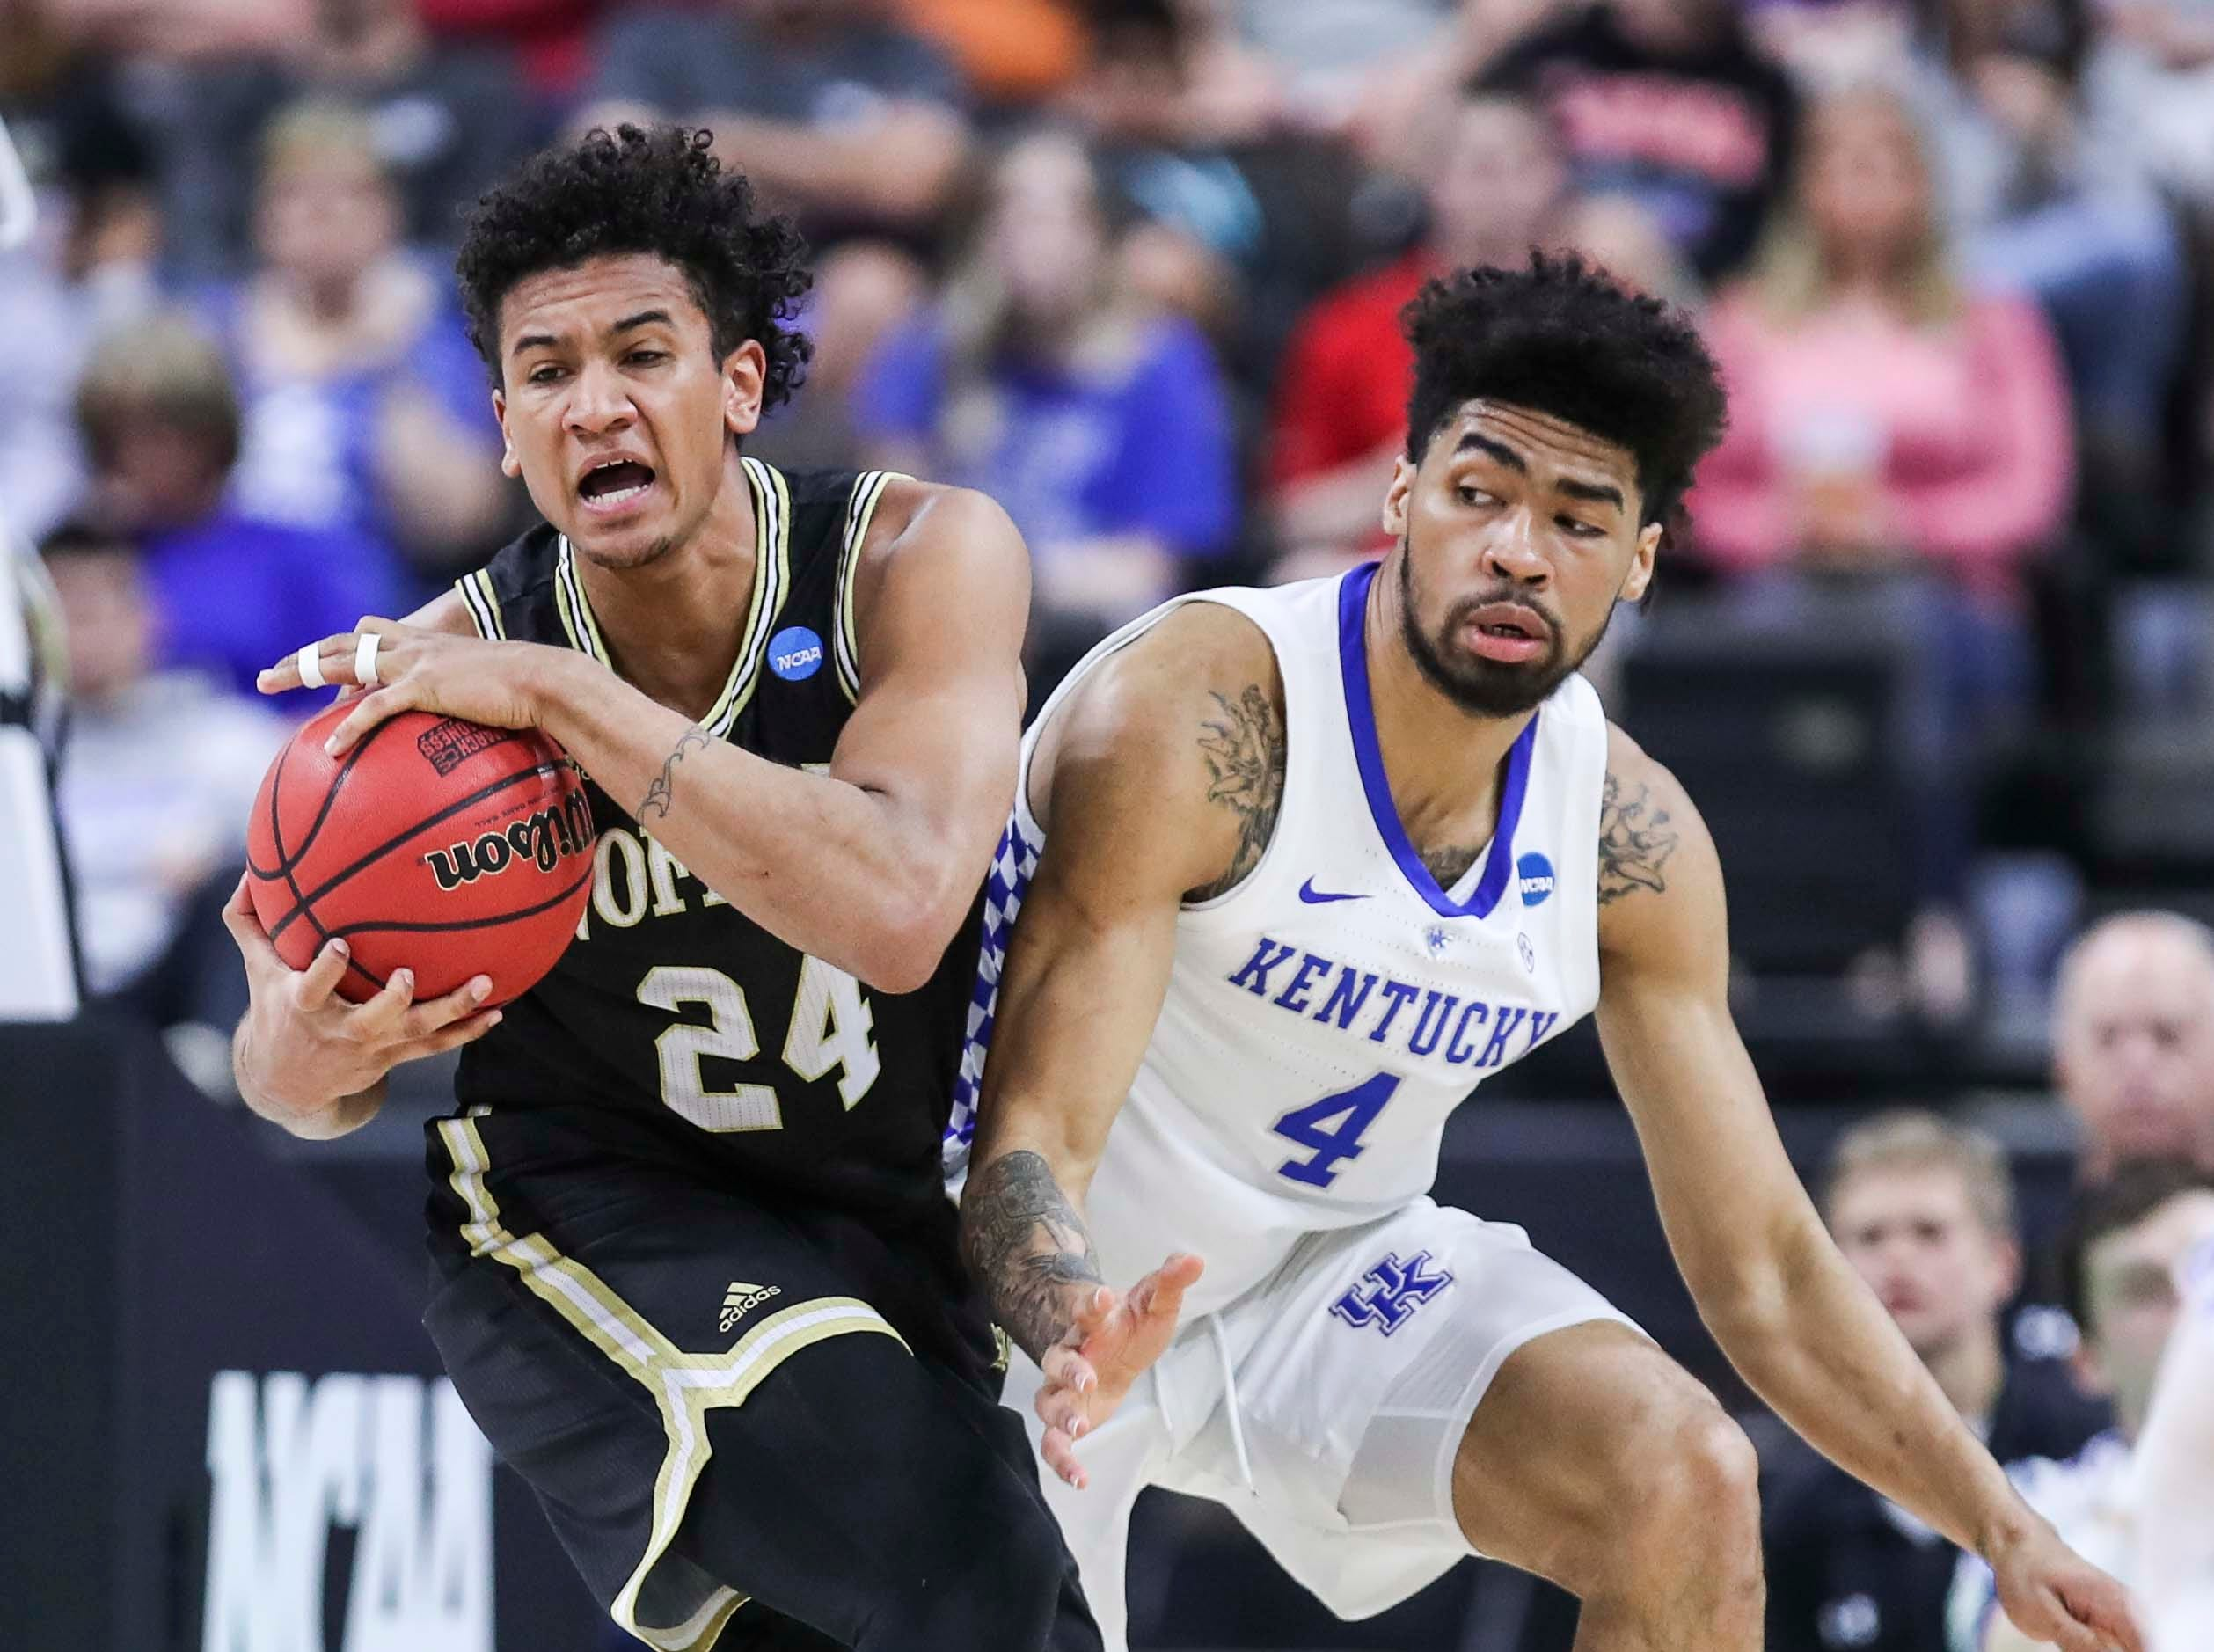 Kentucky's Nick Richards guards Wofford's Keve Aluma in the first half against Wofford in the second round game of the 2019 NCAA tournament in Jacksonville, Fla. March 23, 2019